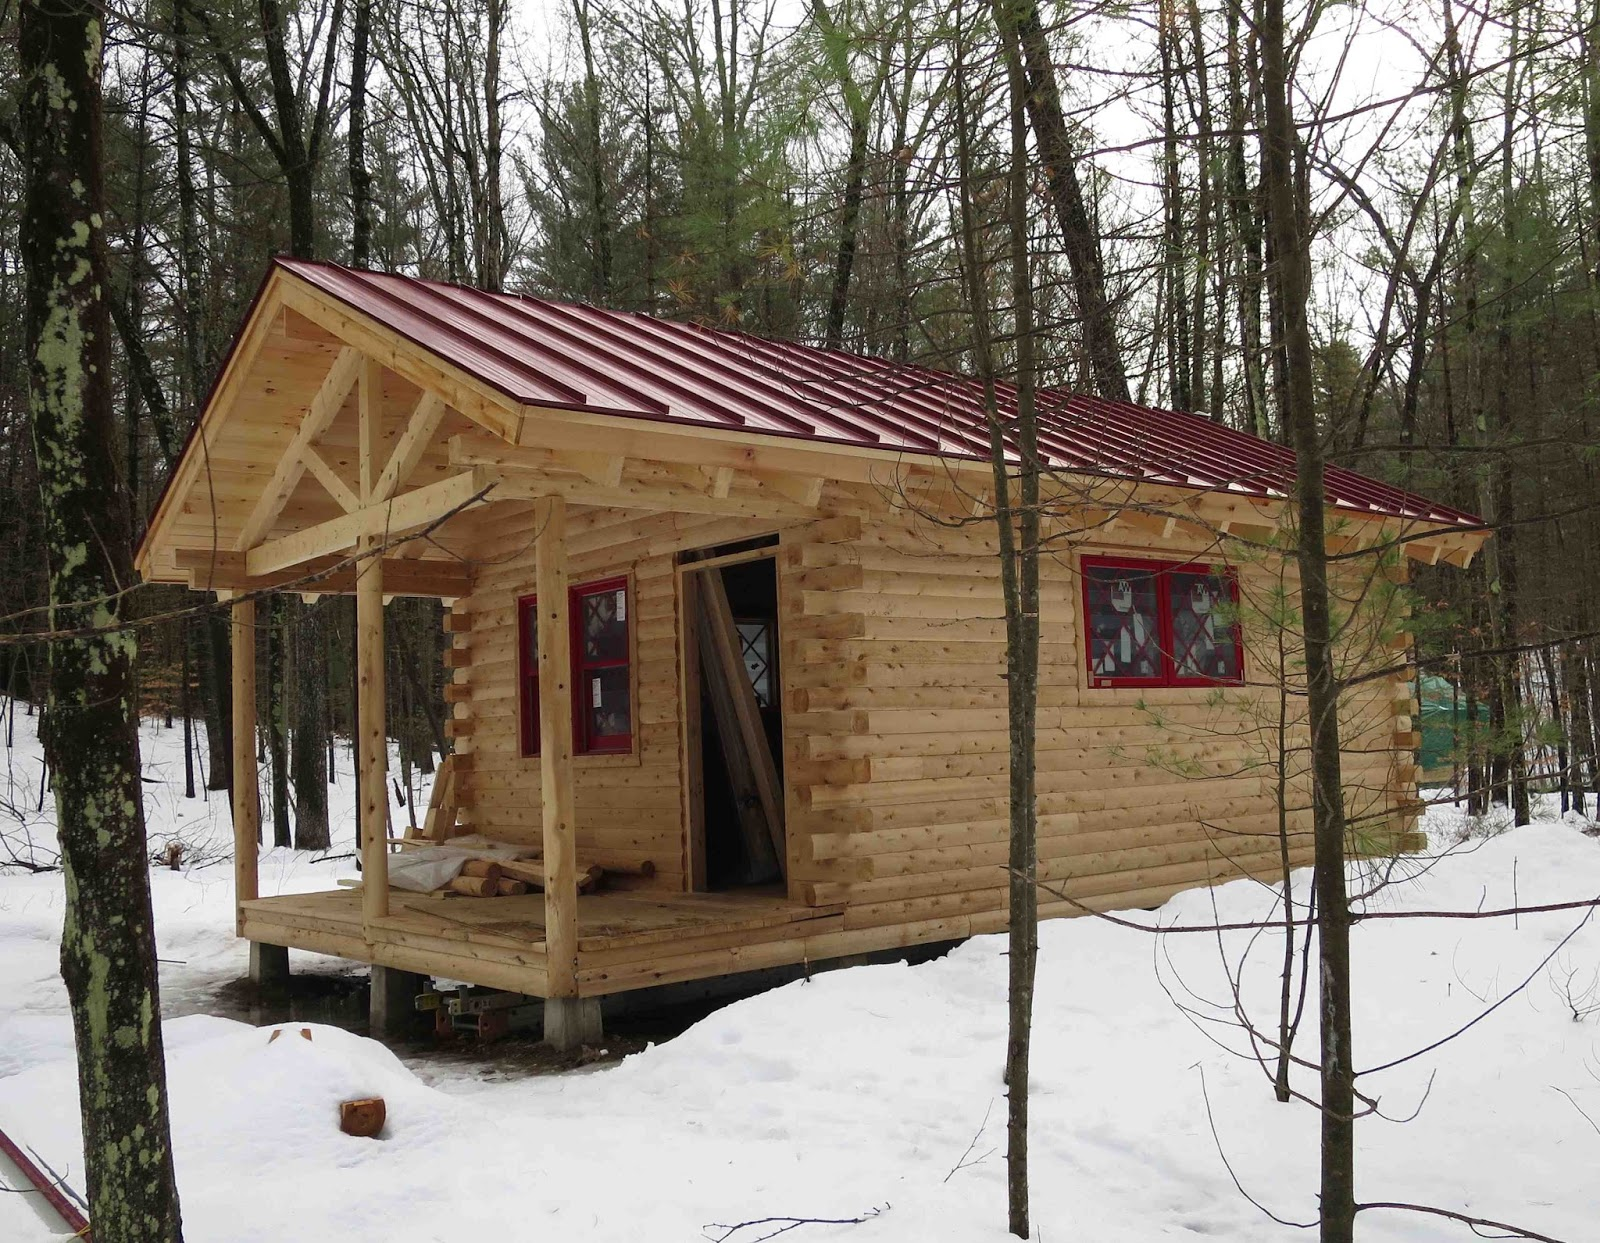 All Of The Cabins Will Be Furnished With Electricity Refrigerators Wood Stoves And Comfortable Furniture Including Rustic Arm Chairs Beds